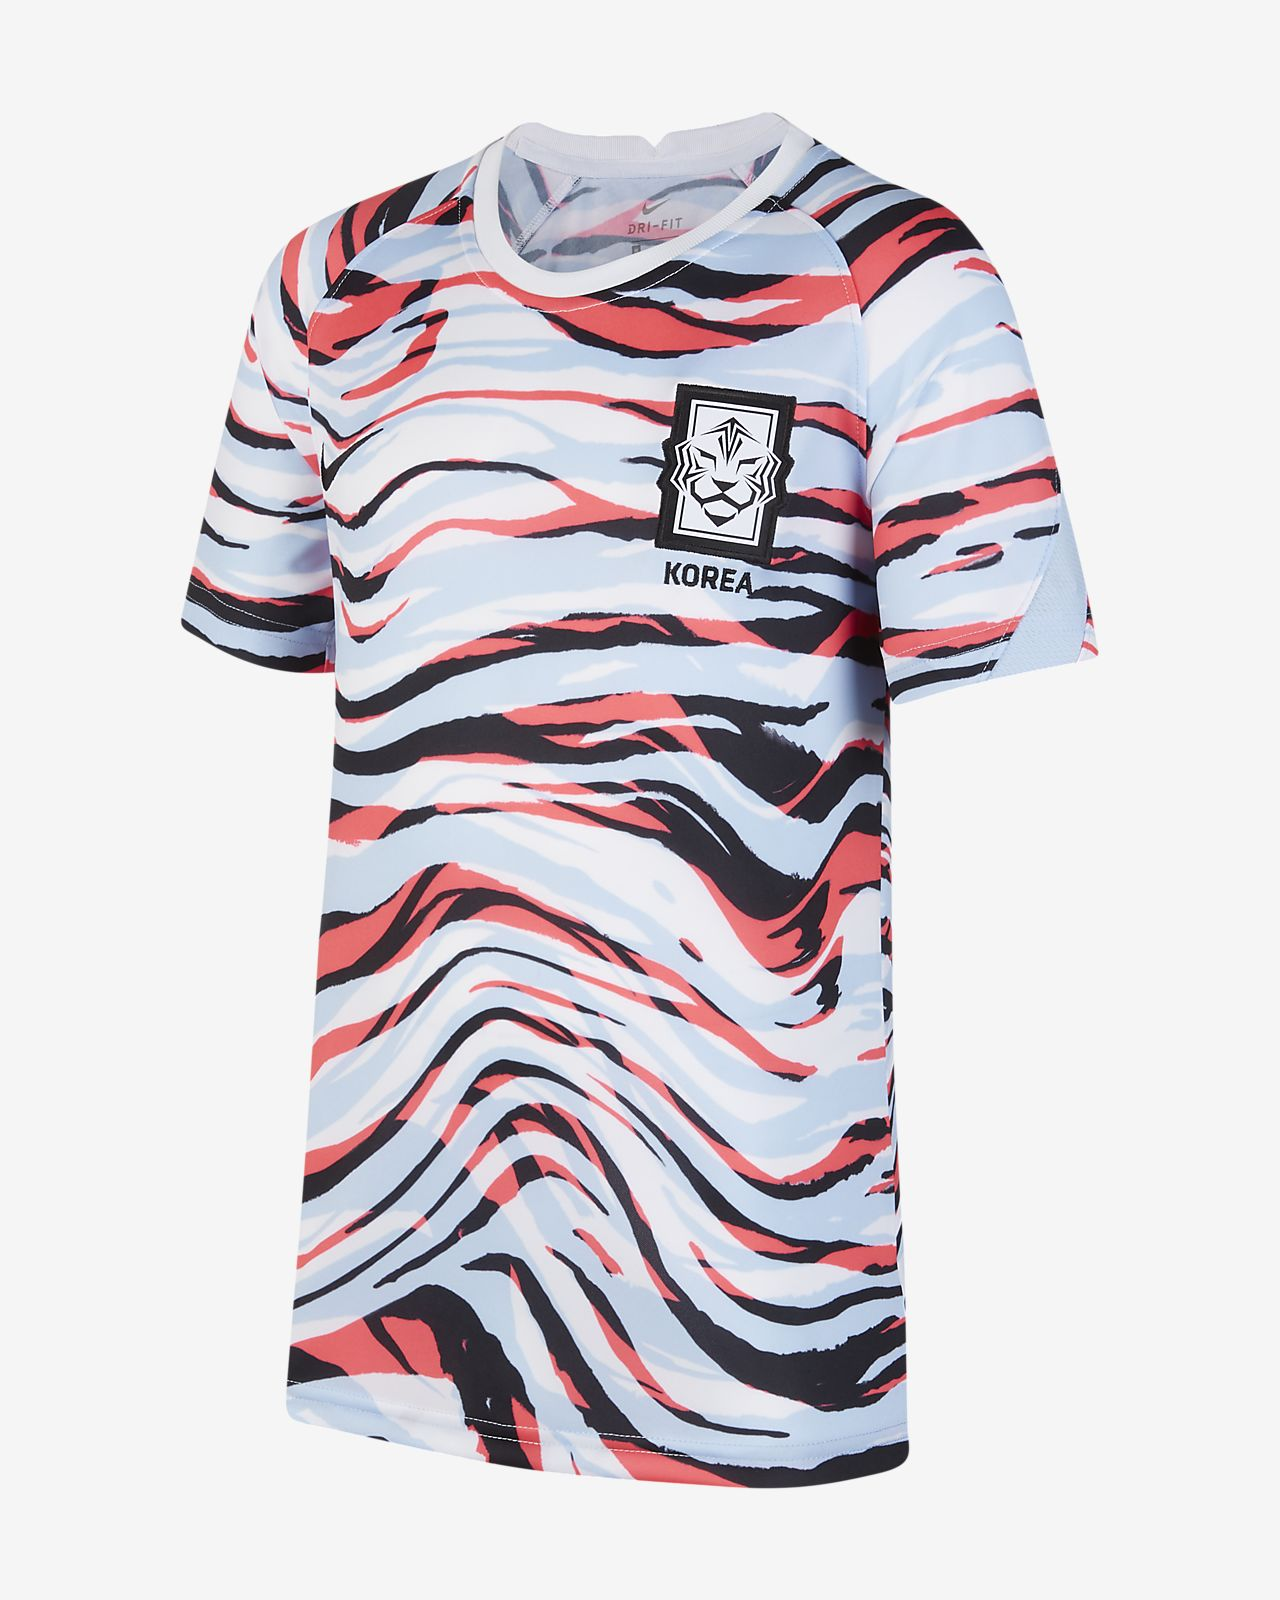 Korea Older Kids' Short-Sleeve Football Top